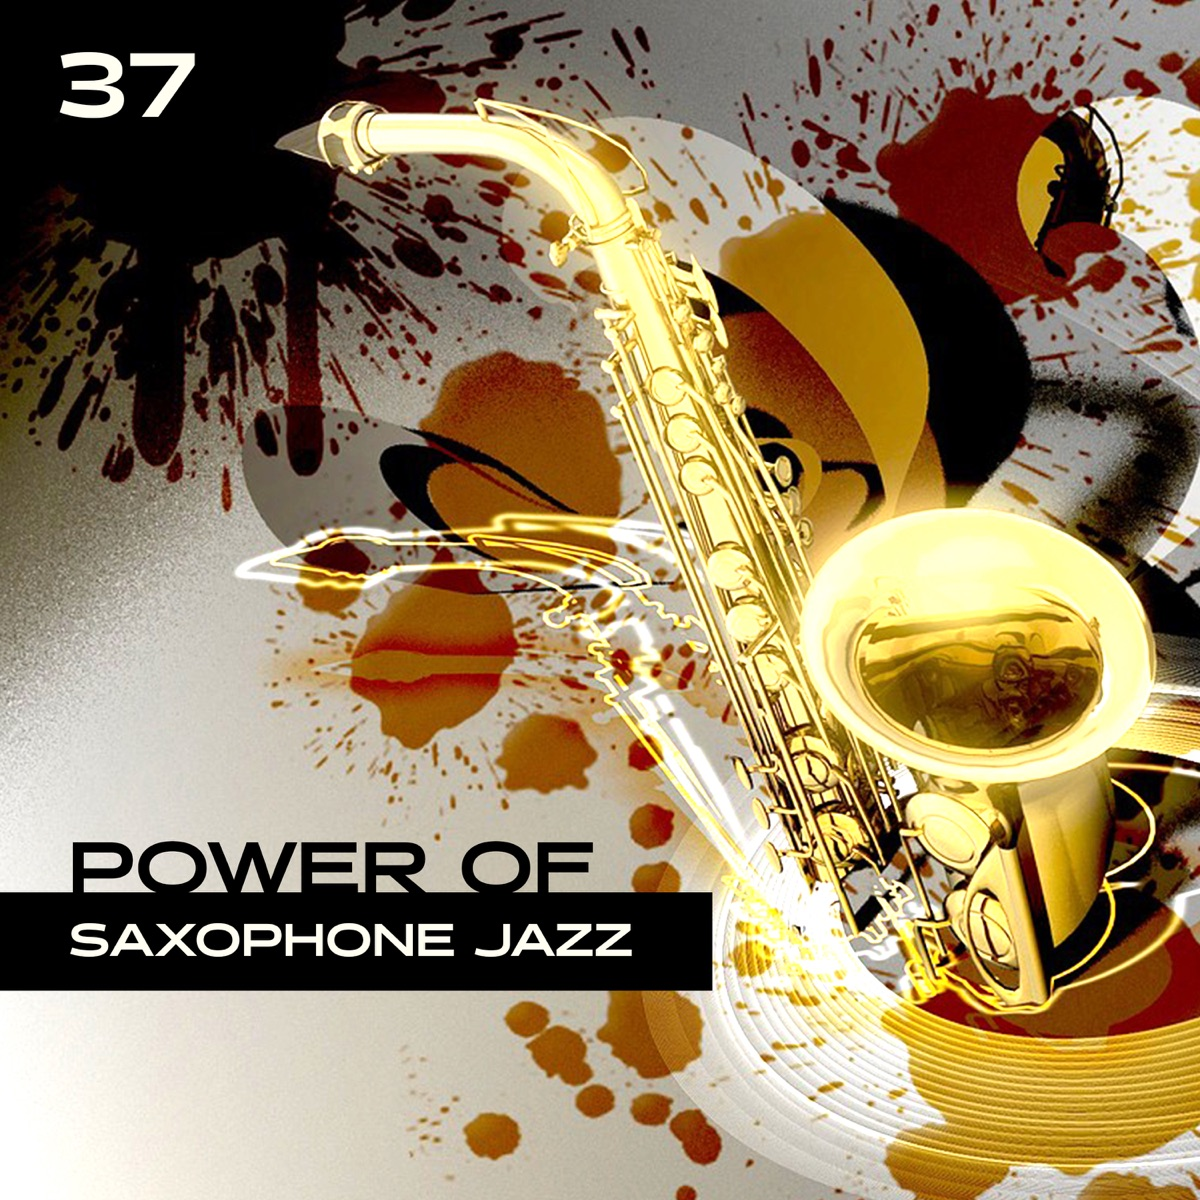 Power of Saxophone Jazz: 37 Night Smooth Vibes, Deep Relaxation in